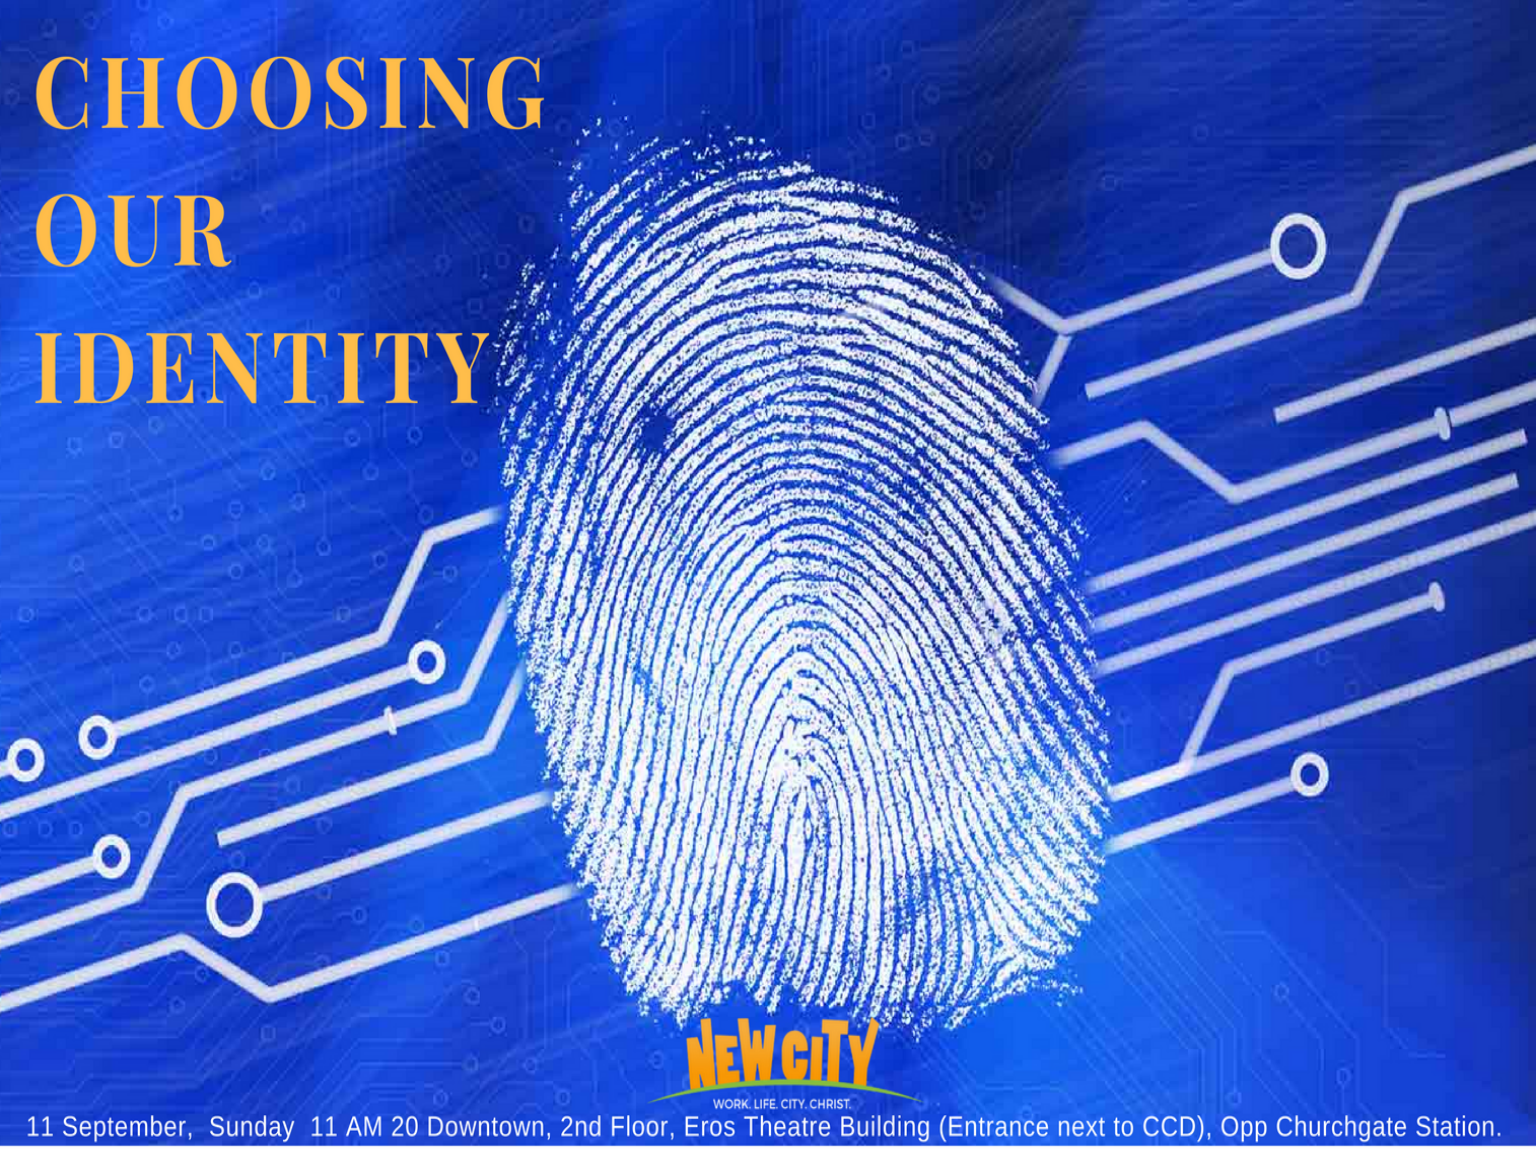 Choosing Our Identity Image